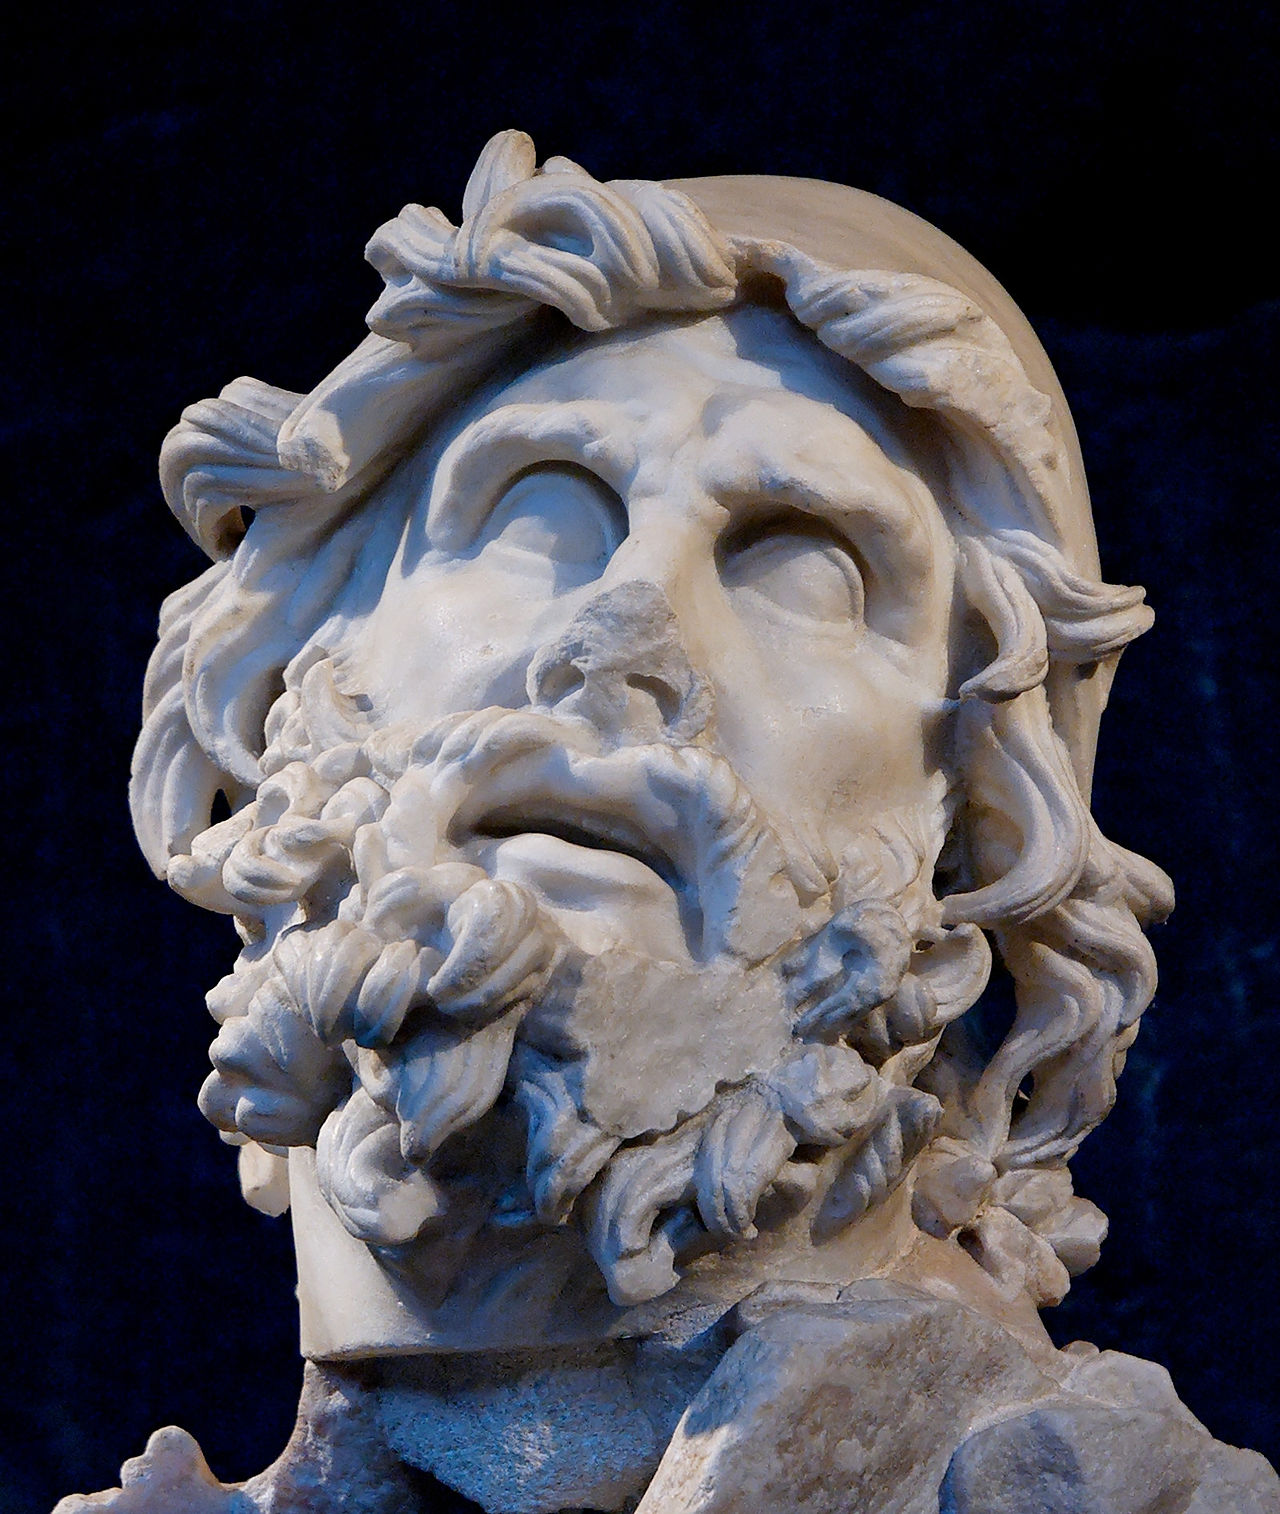 Head of Odysseus from a sculptural group representing Odysseus blinding Polyphemus. (Wikimedia)